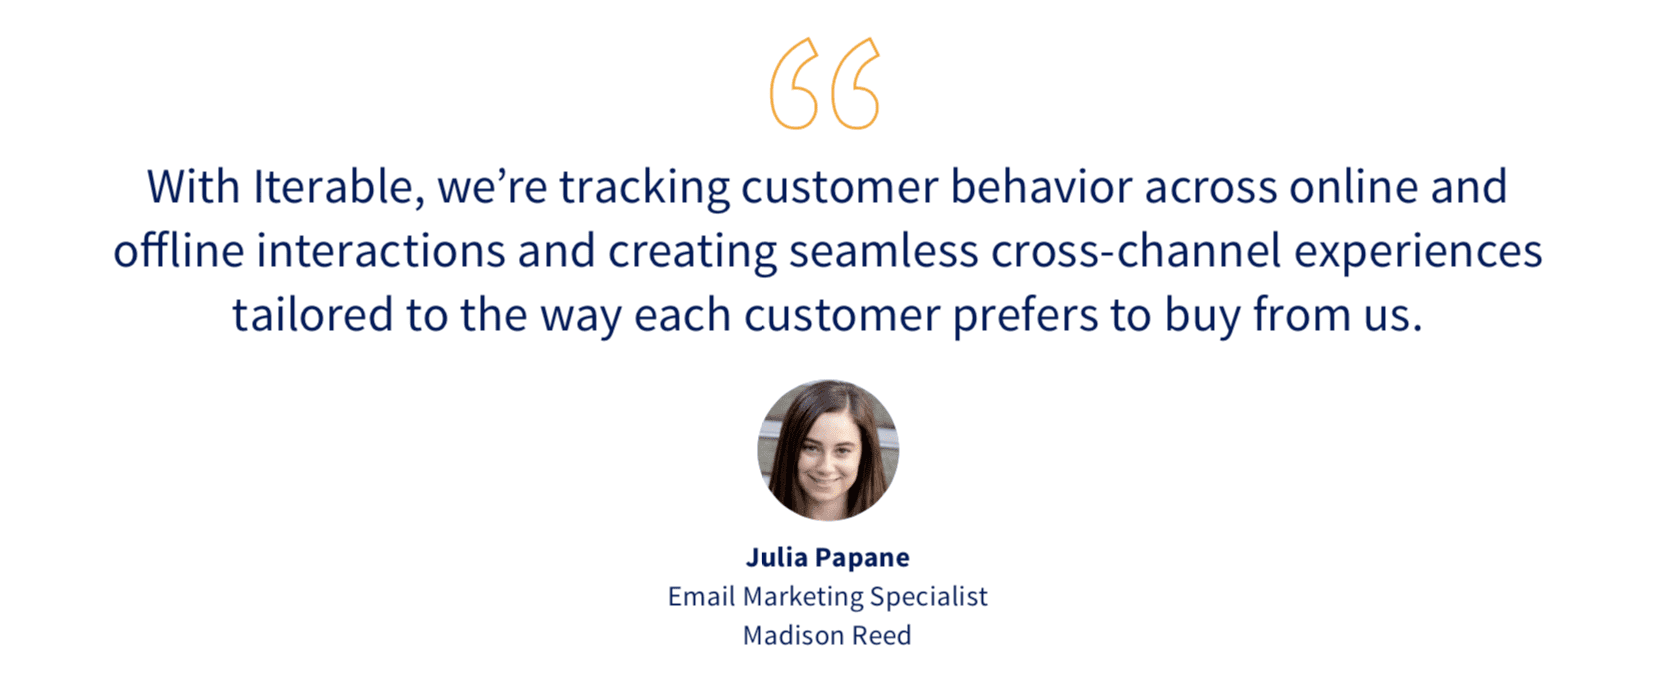 Quote by Julia  Papane, Email Marketing Specialist at Madison Reed